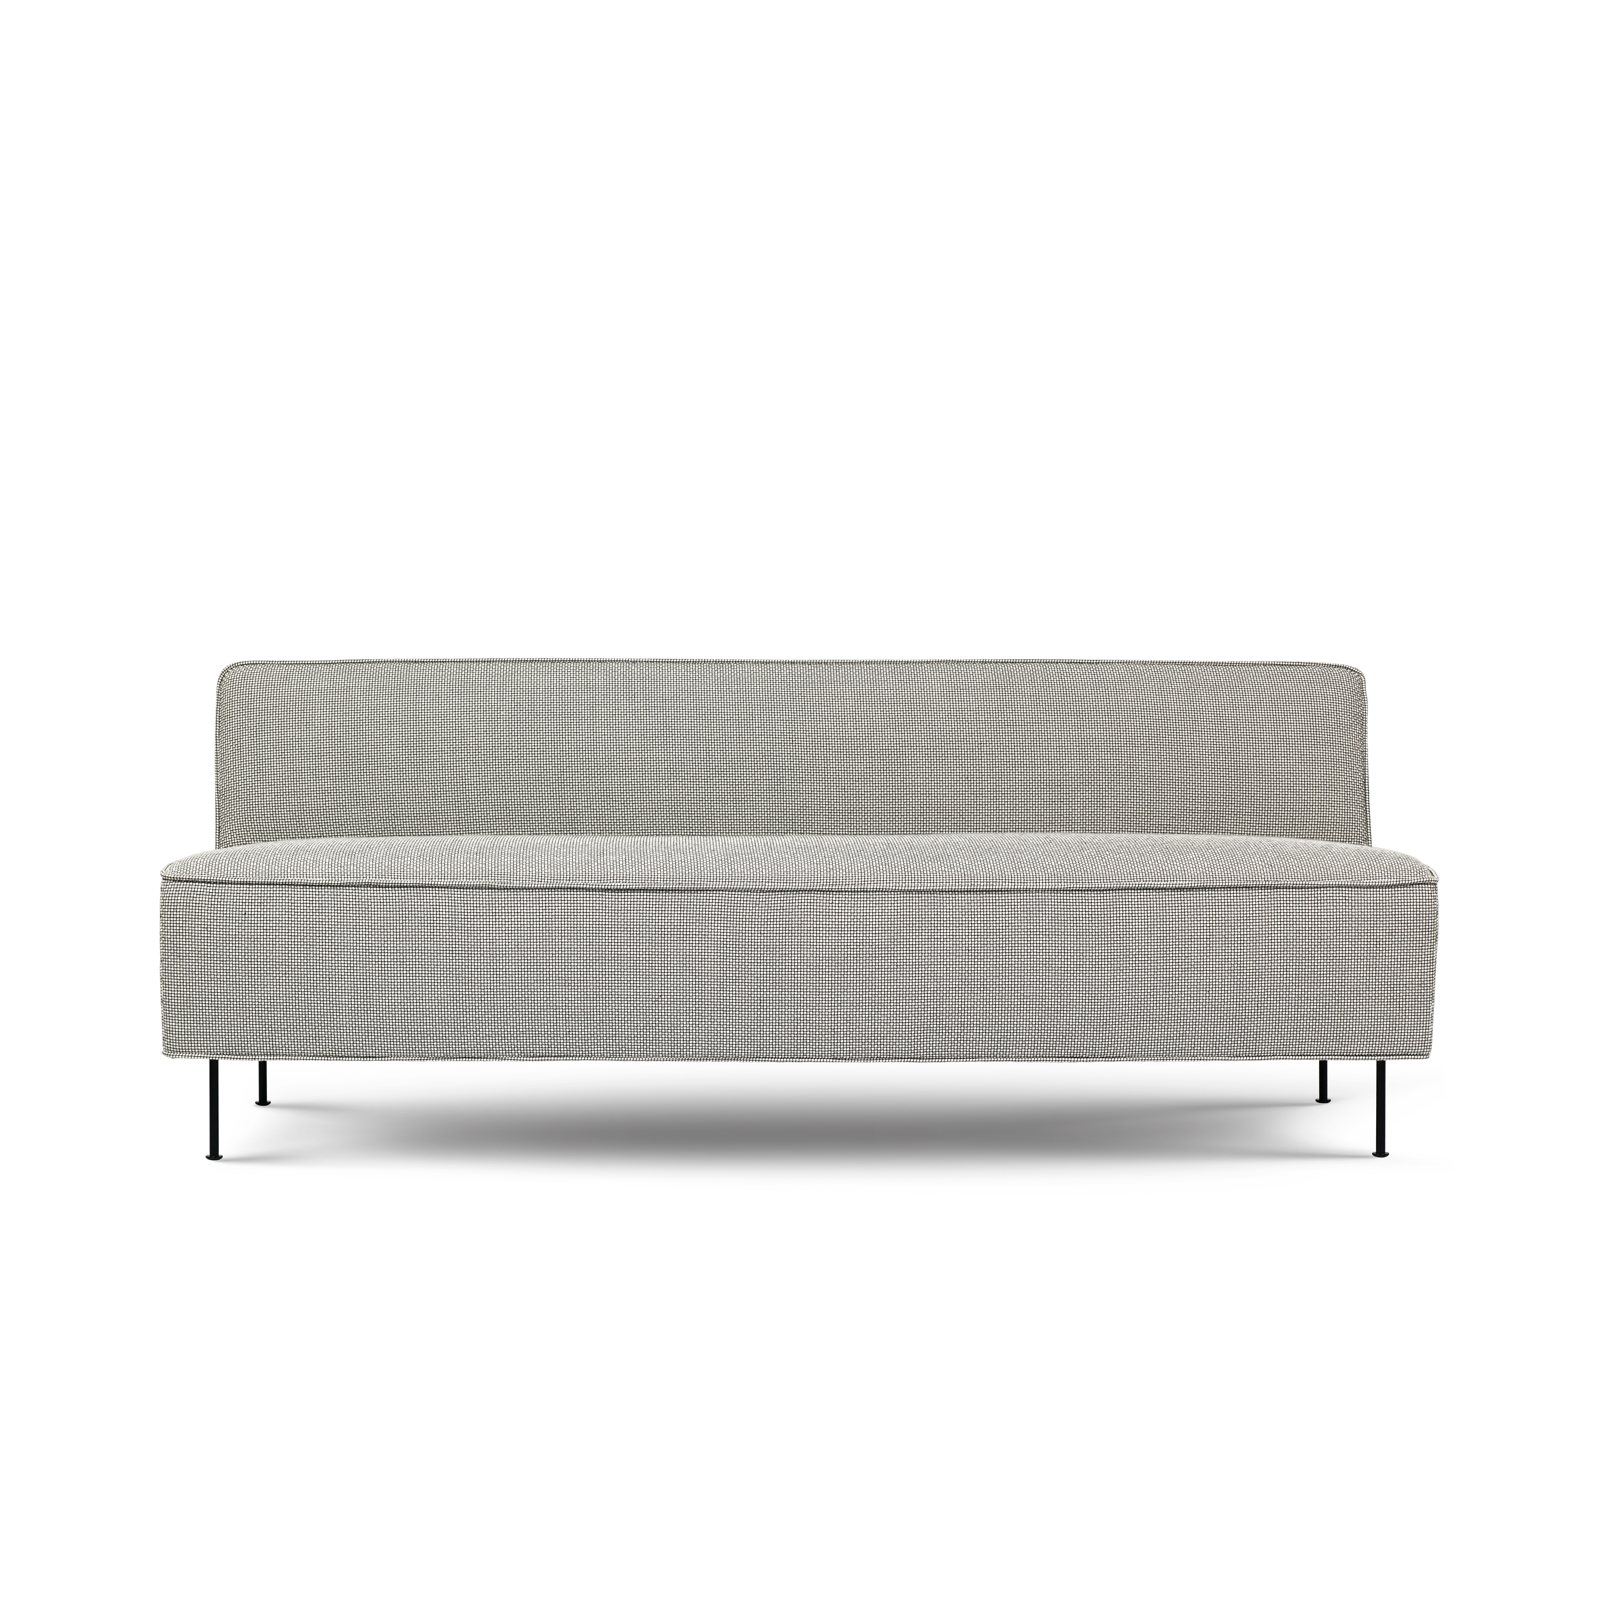 Modern line sofa 2 seater by greta m grossman for gubi for Modern line furniture